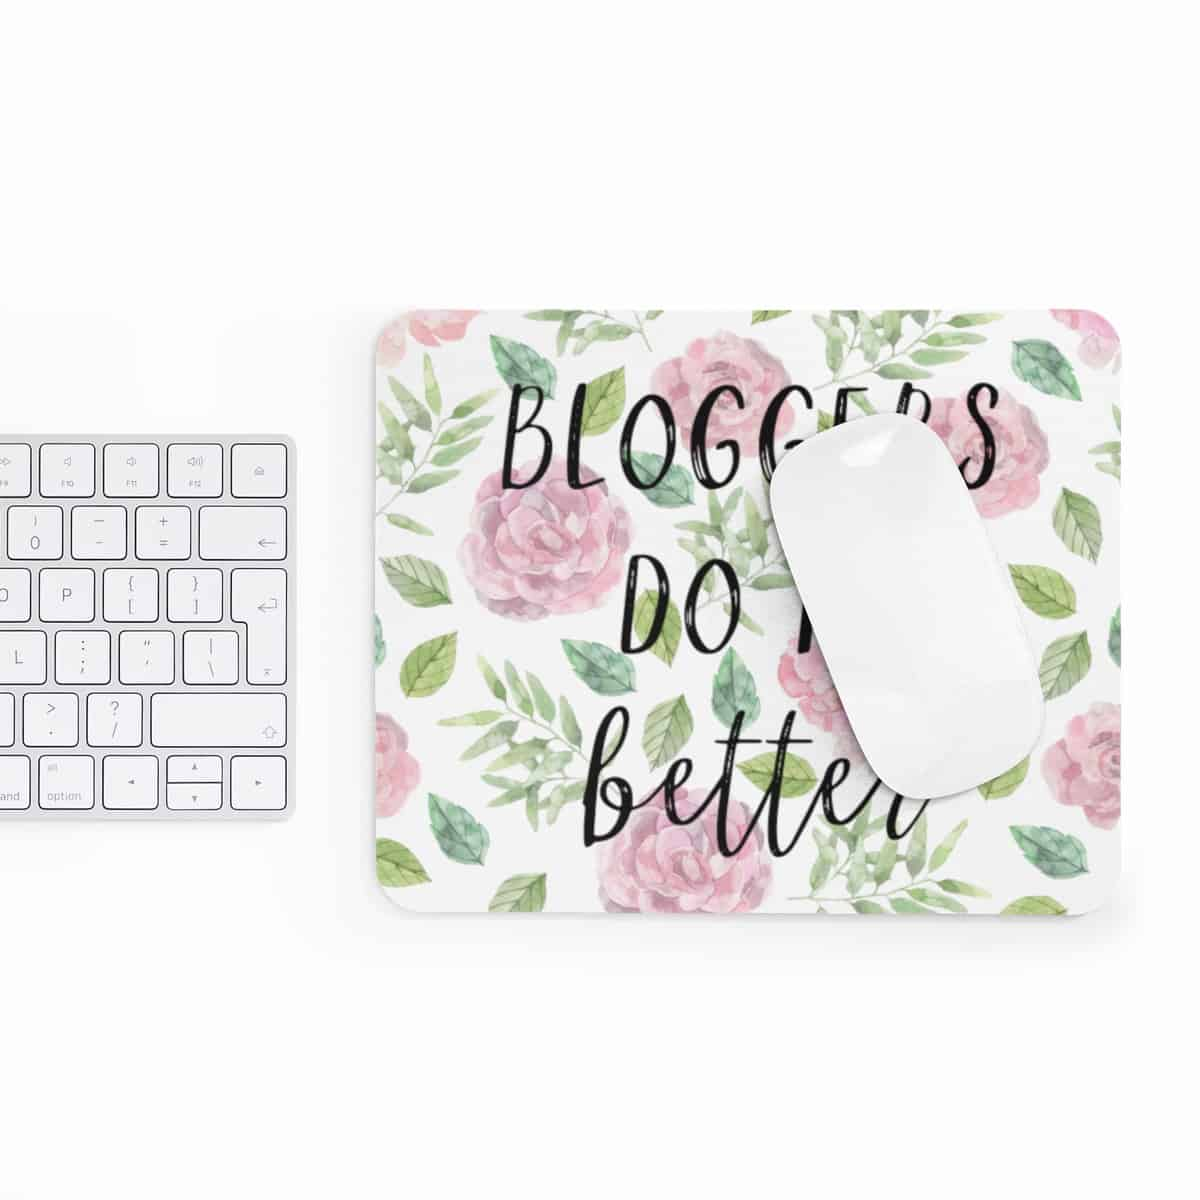 Watercolor designed mousepad for bloggers. In need of a new mousepad to brighten up your workspace and add some personality to your home desk? Check out our custom made Mouse Pad designs and get yours today!